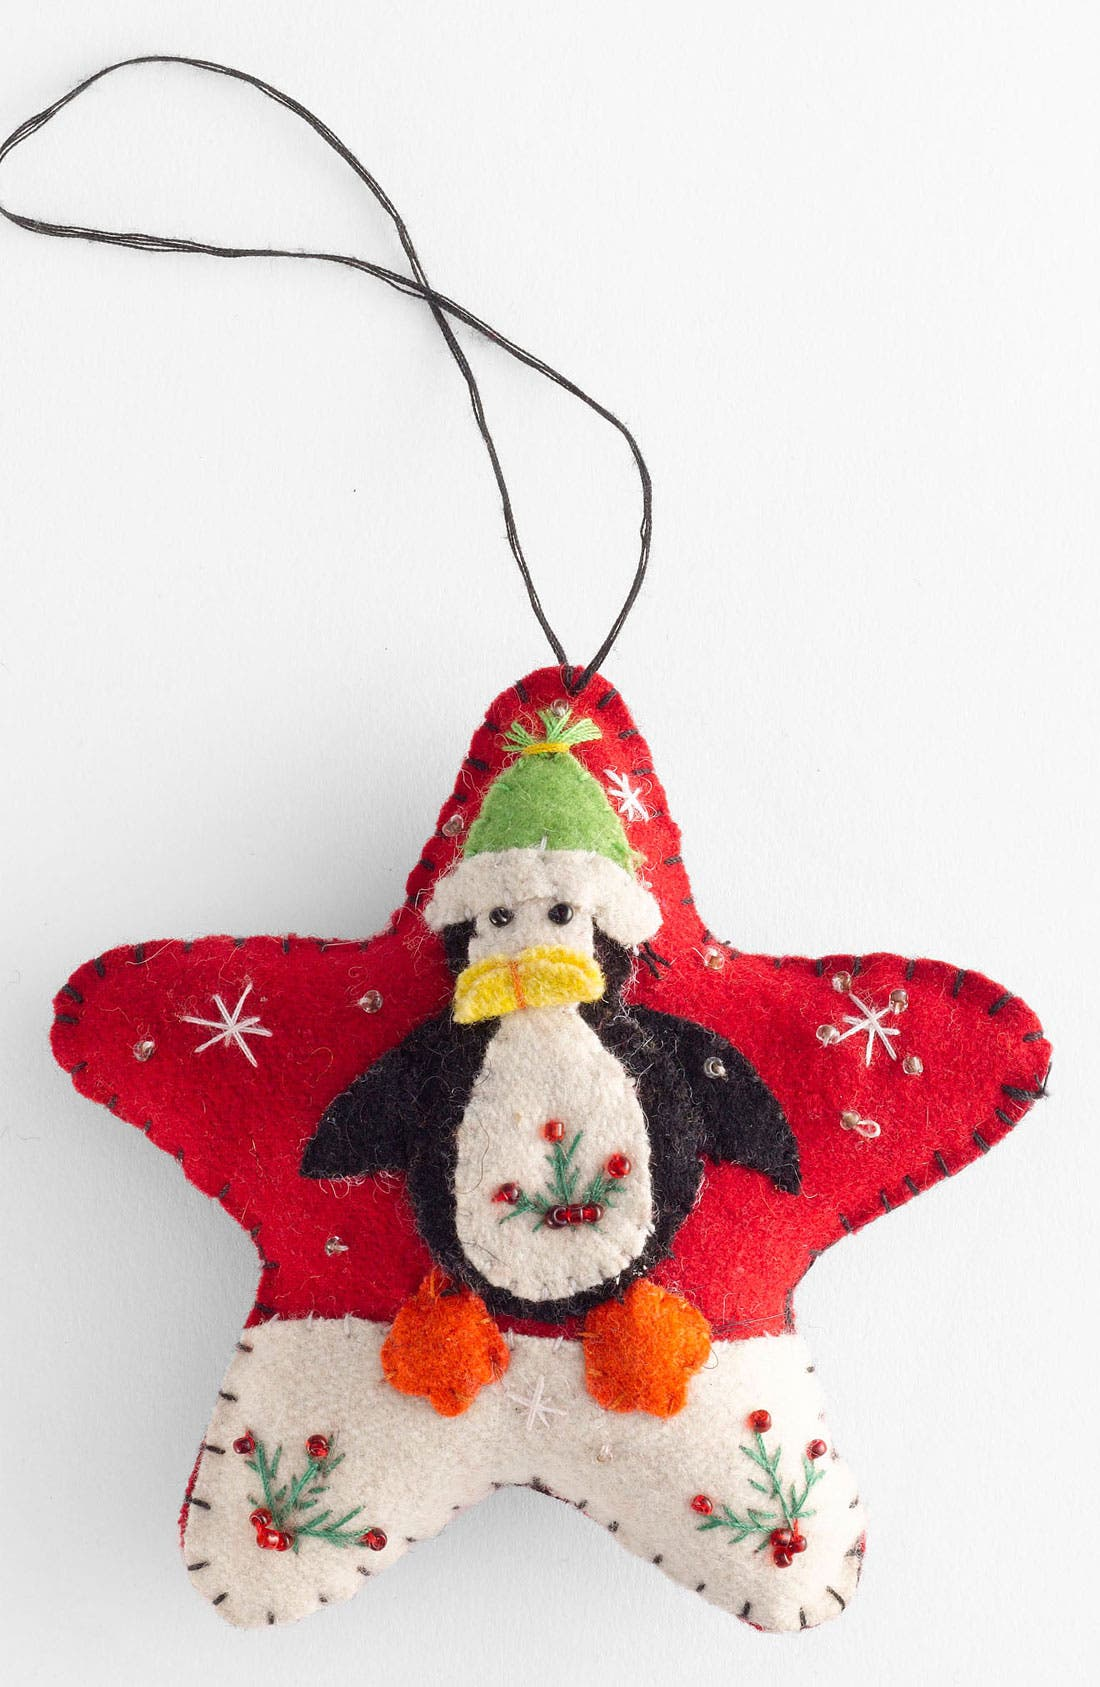 Alternate Image 1 Selected - New World Arts 'Puffy Star with Penguin' Ornament